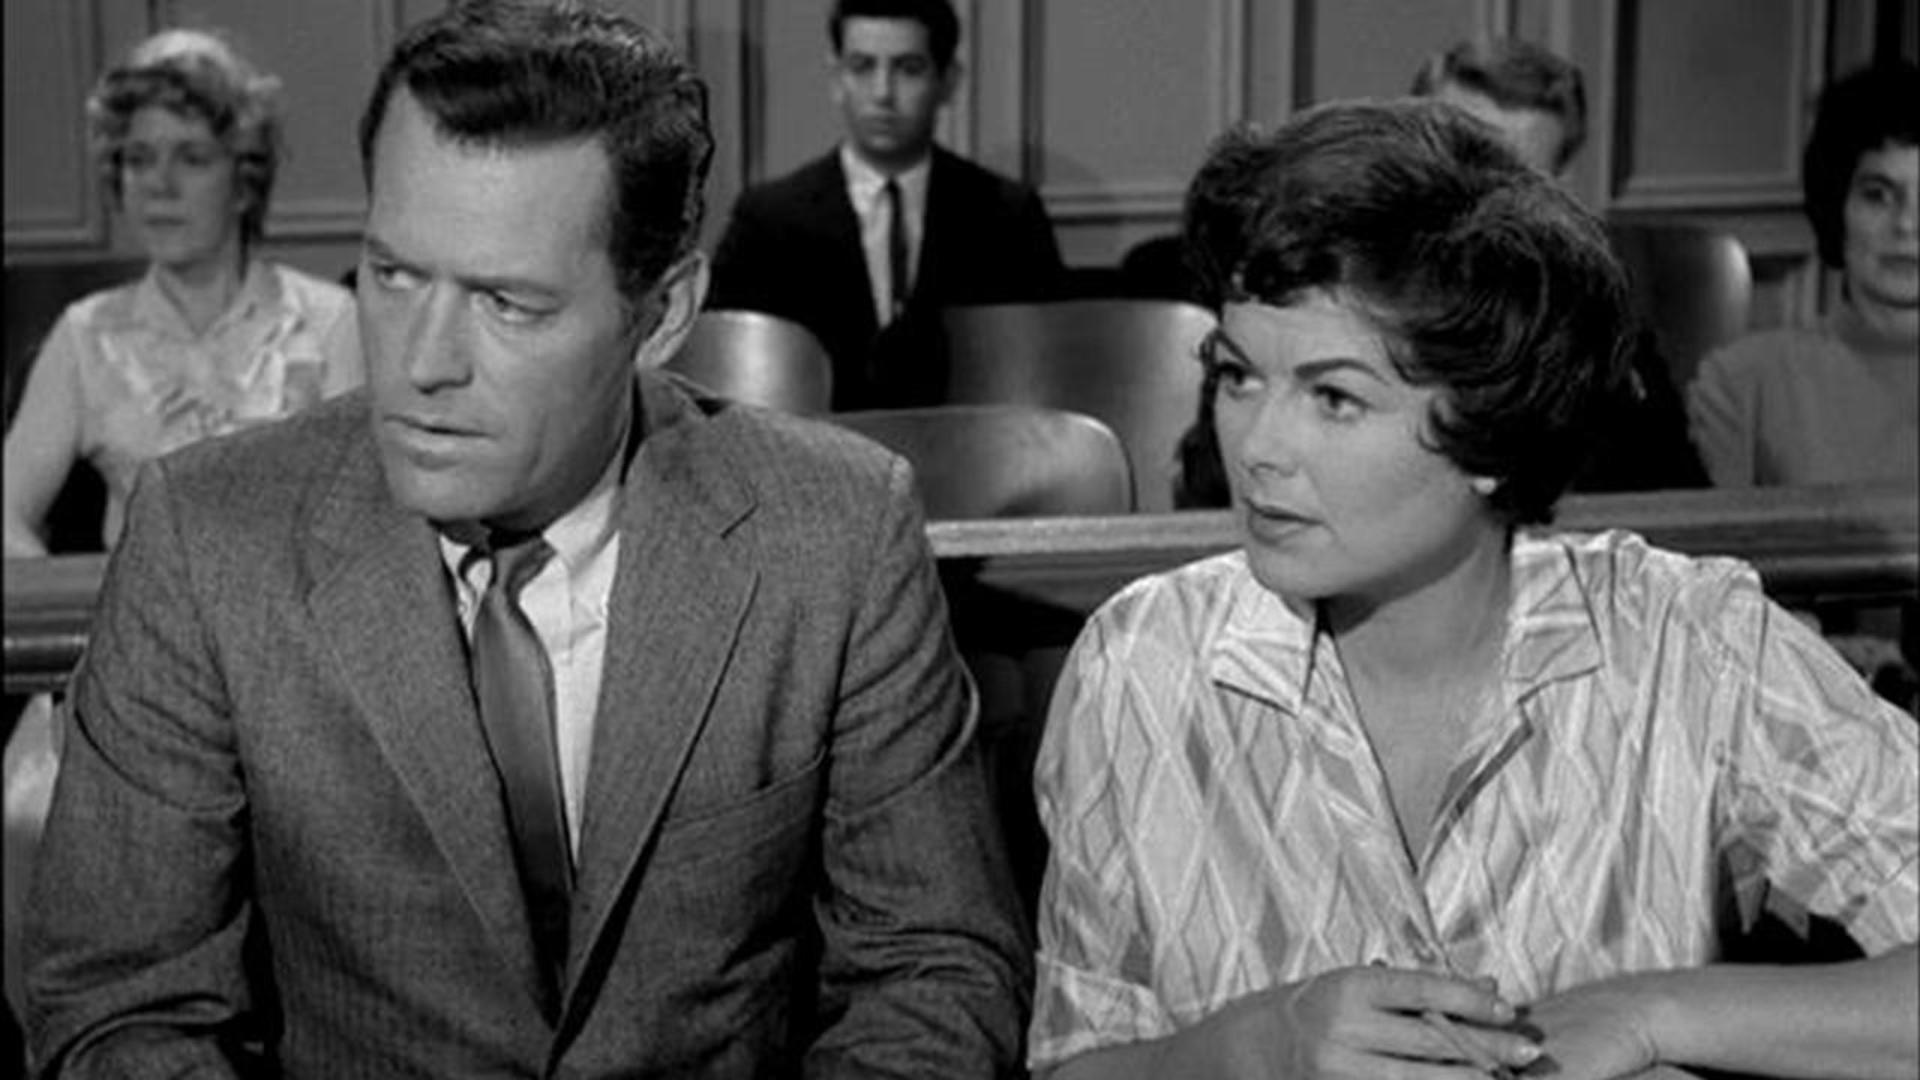 Watch Perry Mason Season 4 Episode 28: The Case of the Guilty Clients -  Full show on CBS All Access